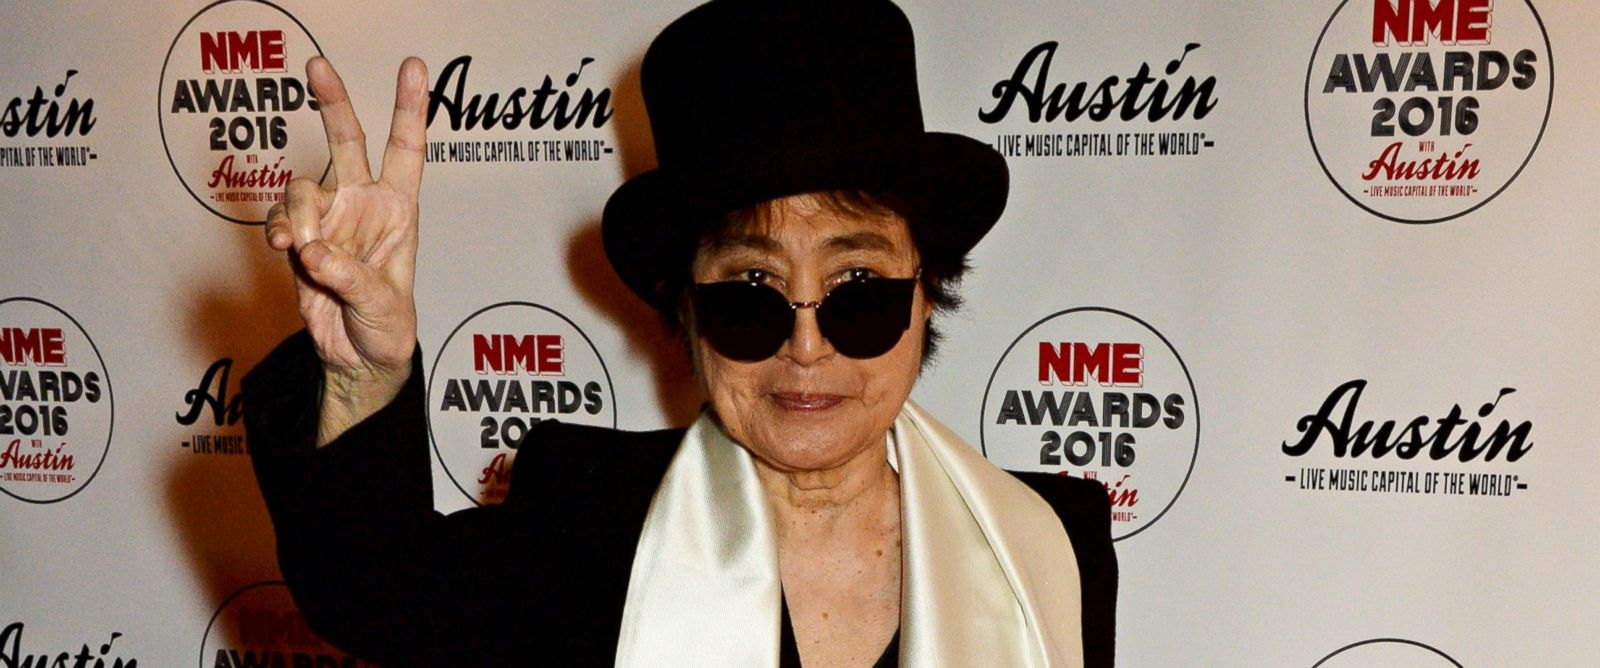 PHOTO: Yoko Ono attends the NME Awards at the O2 Academy Brixton, Feb. 17, 2016, in London.